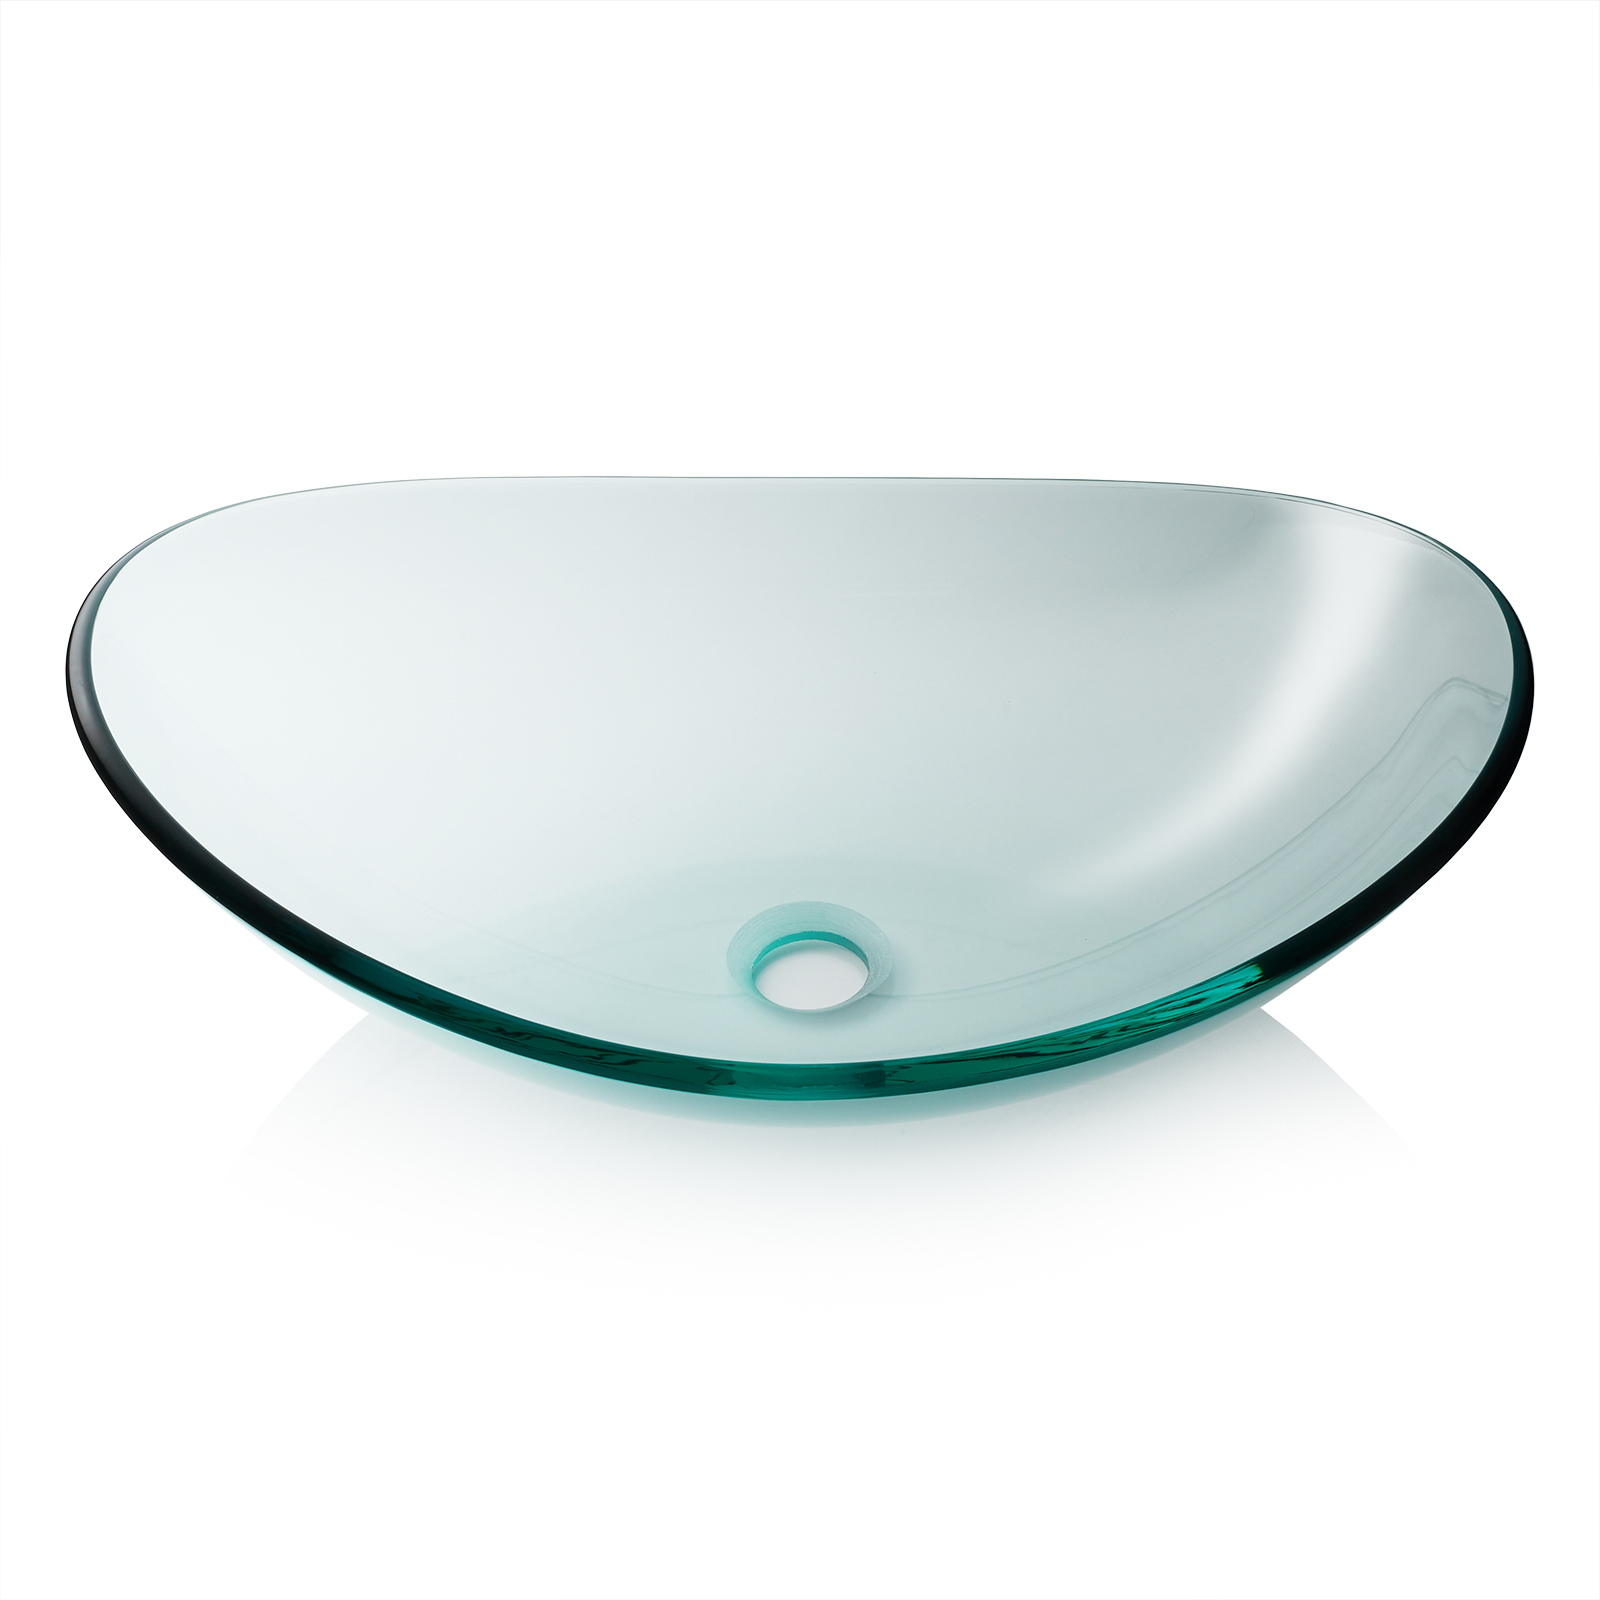 Miligore Modern Glass Vessel Sink   Above Counter Bathroom Vanity Basin  Bowl   Oval Boat Clear